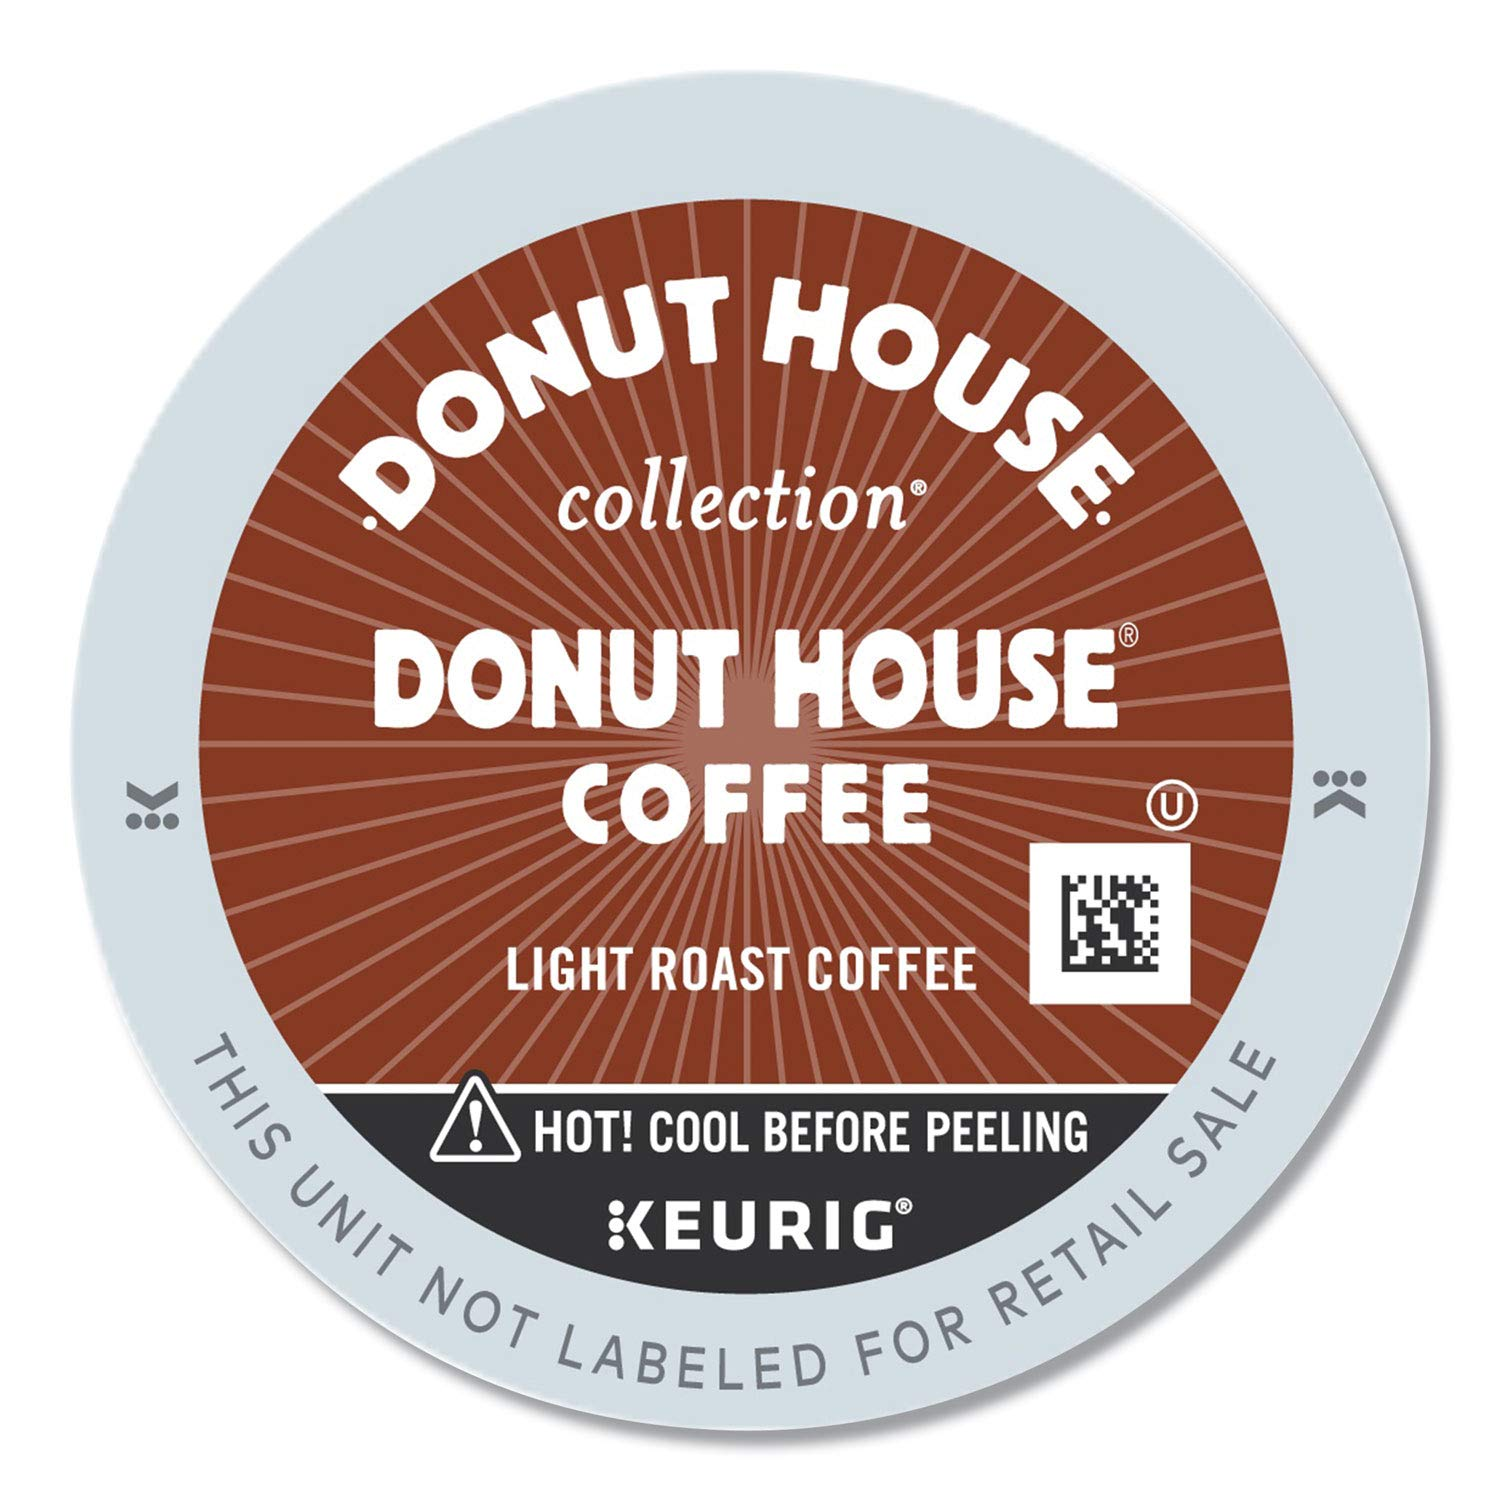 Donut House Collection, Donut House Coffee, Single-Serve Keurig K-Cup Pods, Light Roast, 96 Count (4 Boxes of 24 Pods)